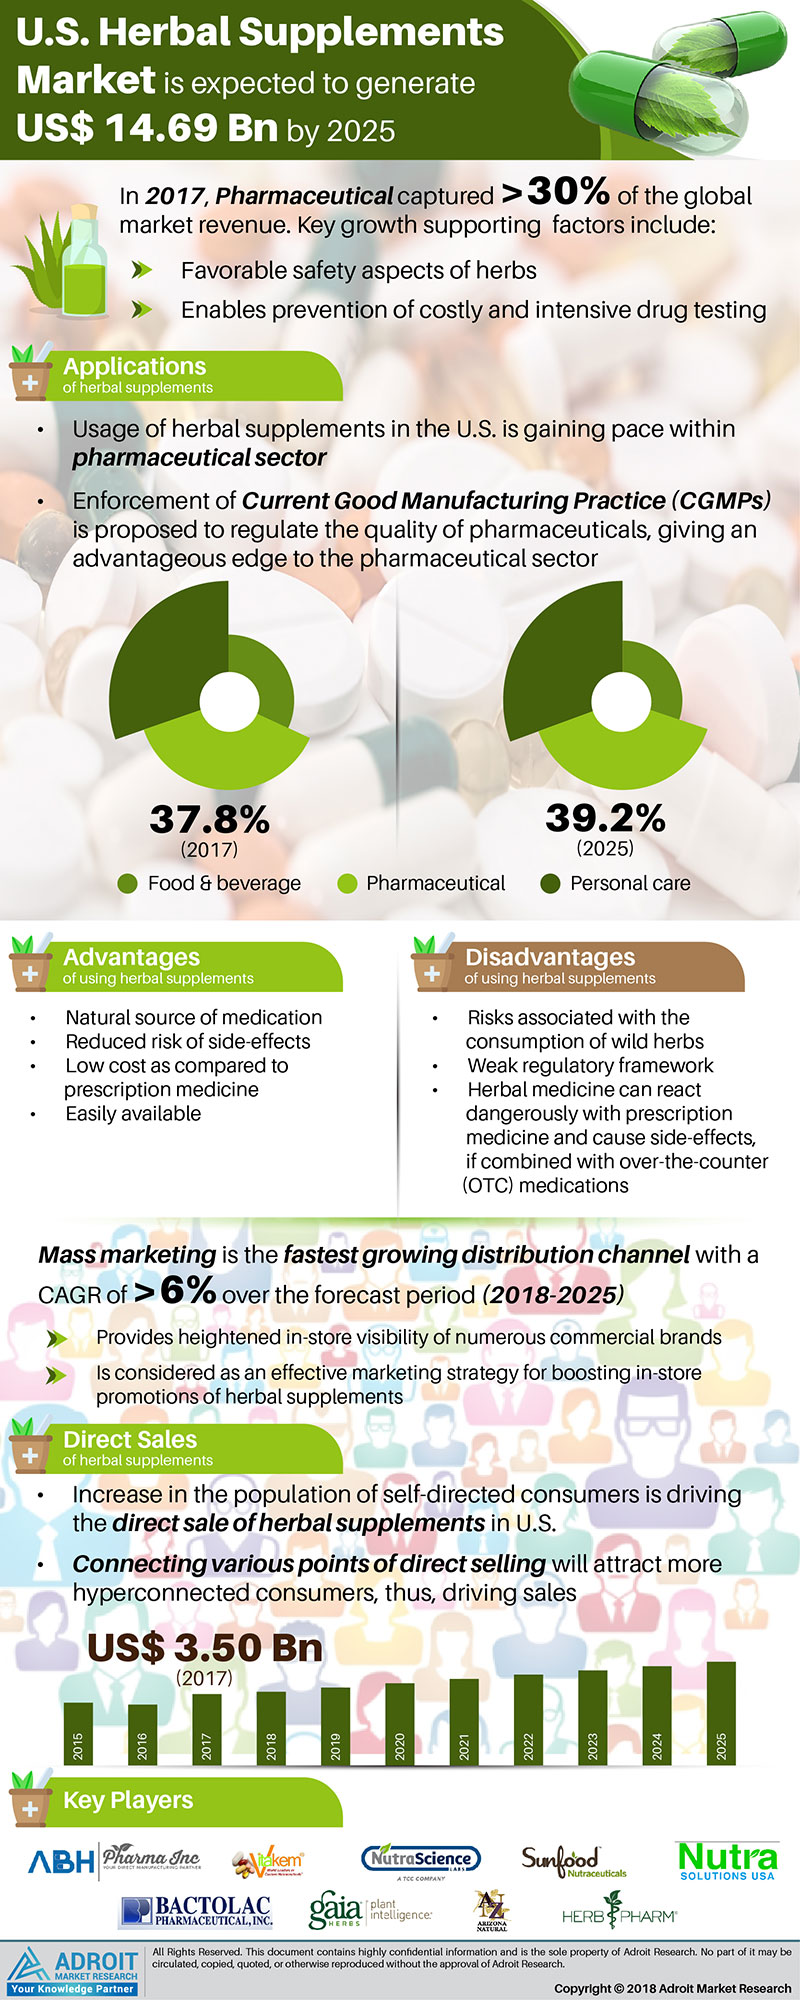 US Herbal Supplements Market Size by Type, Applications, Region and Forecast 2018 to 2025